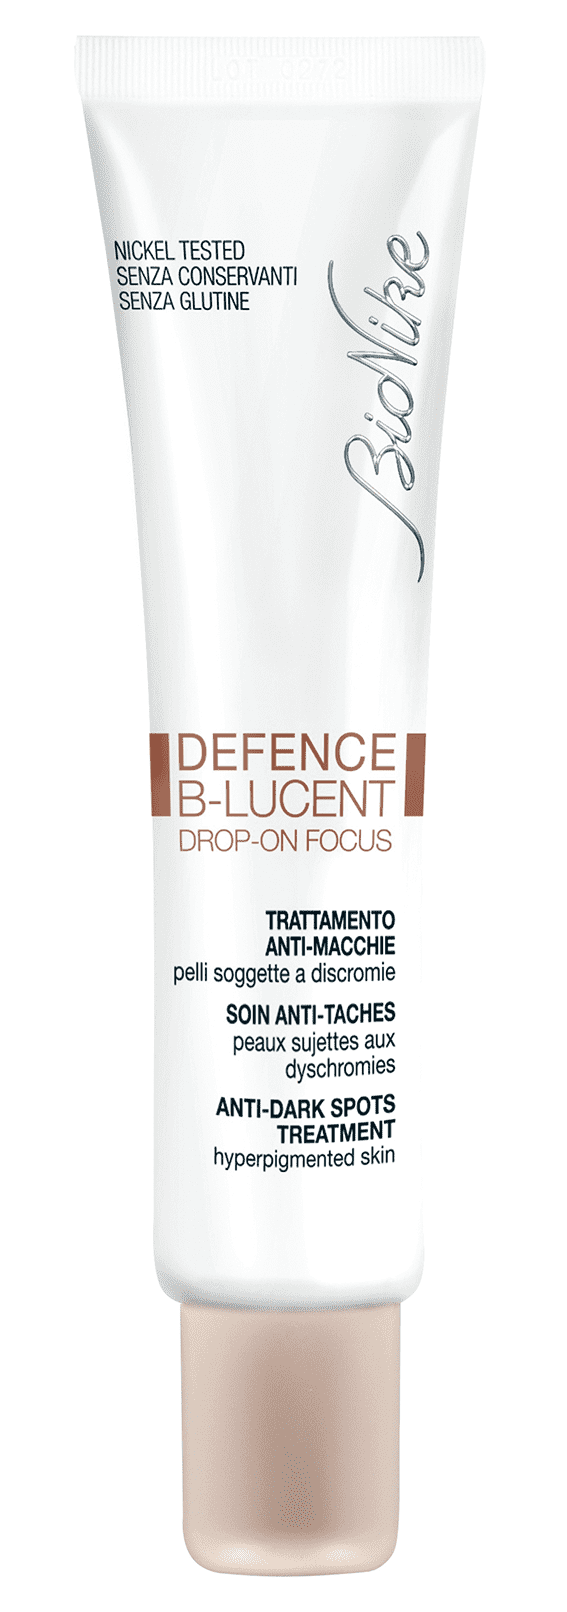 Defence B-Lucent Drop On Focus, BioNike